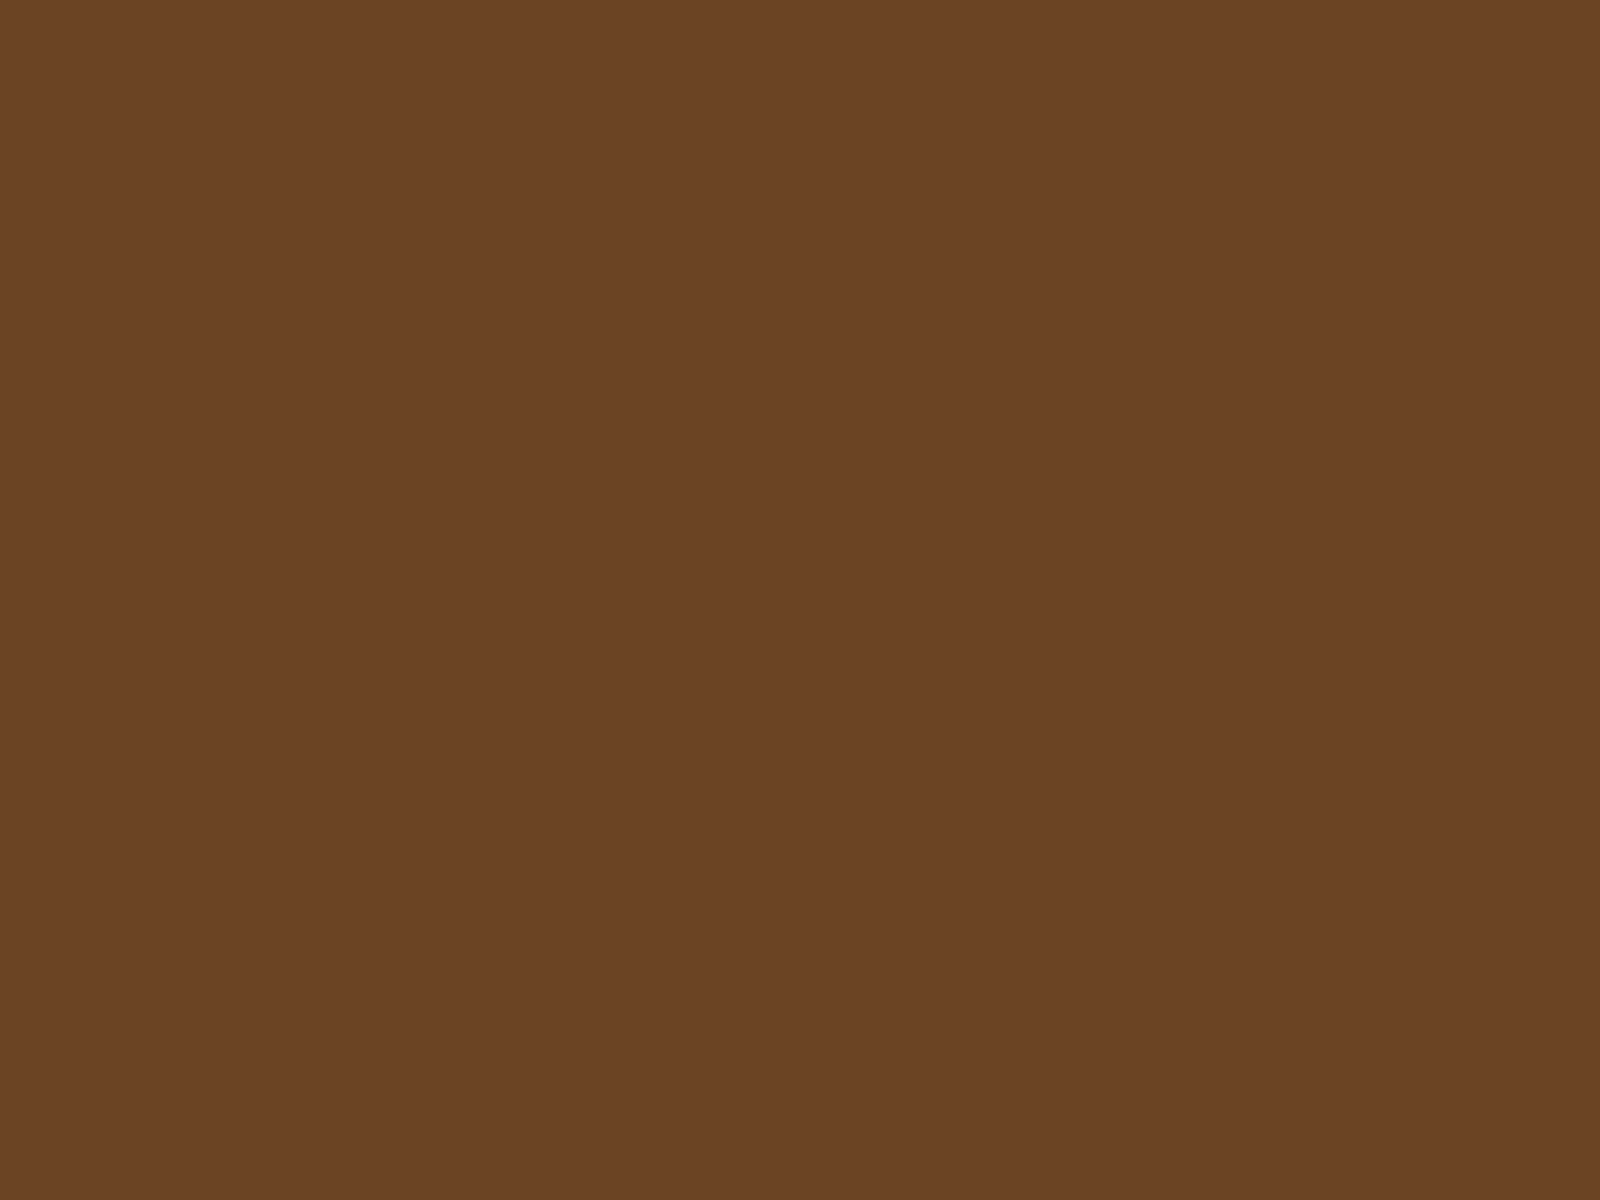 1600x1200 Brown-nose Solid Color Background